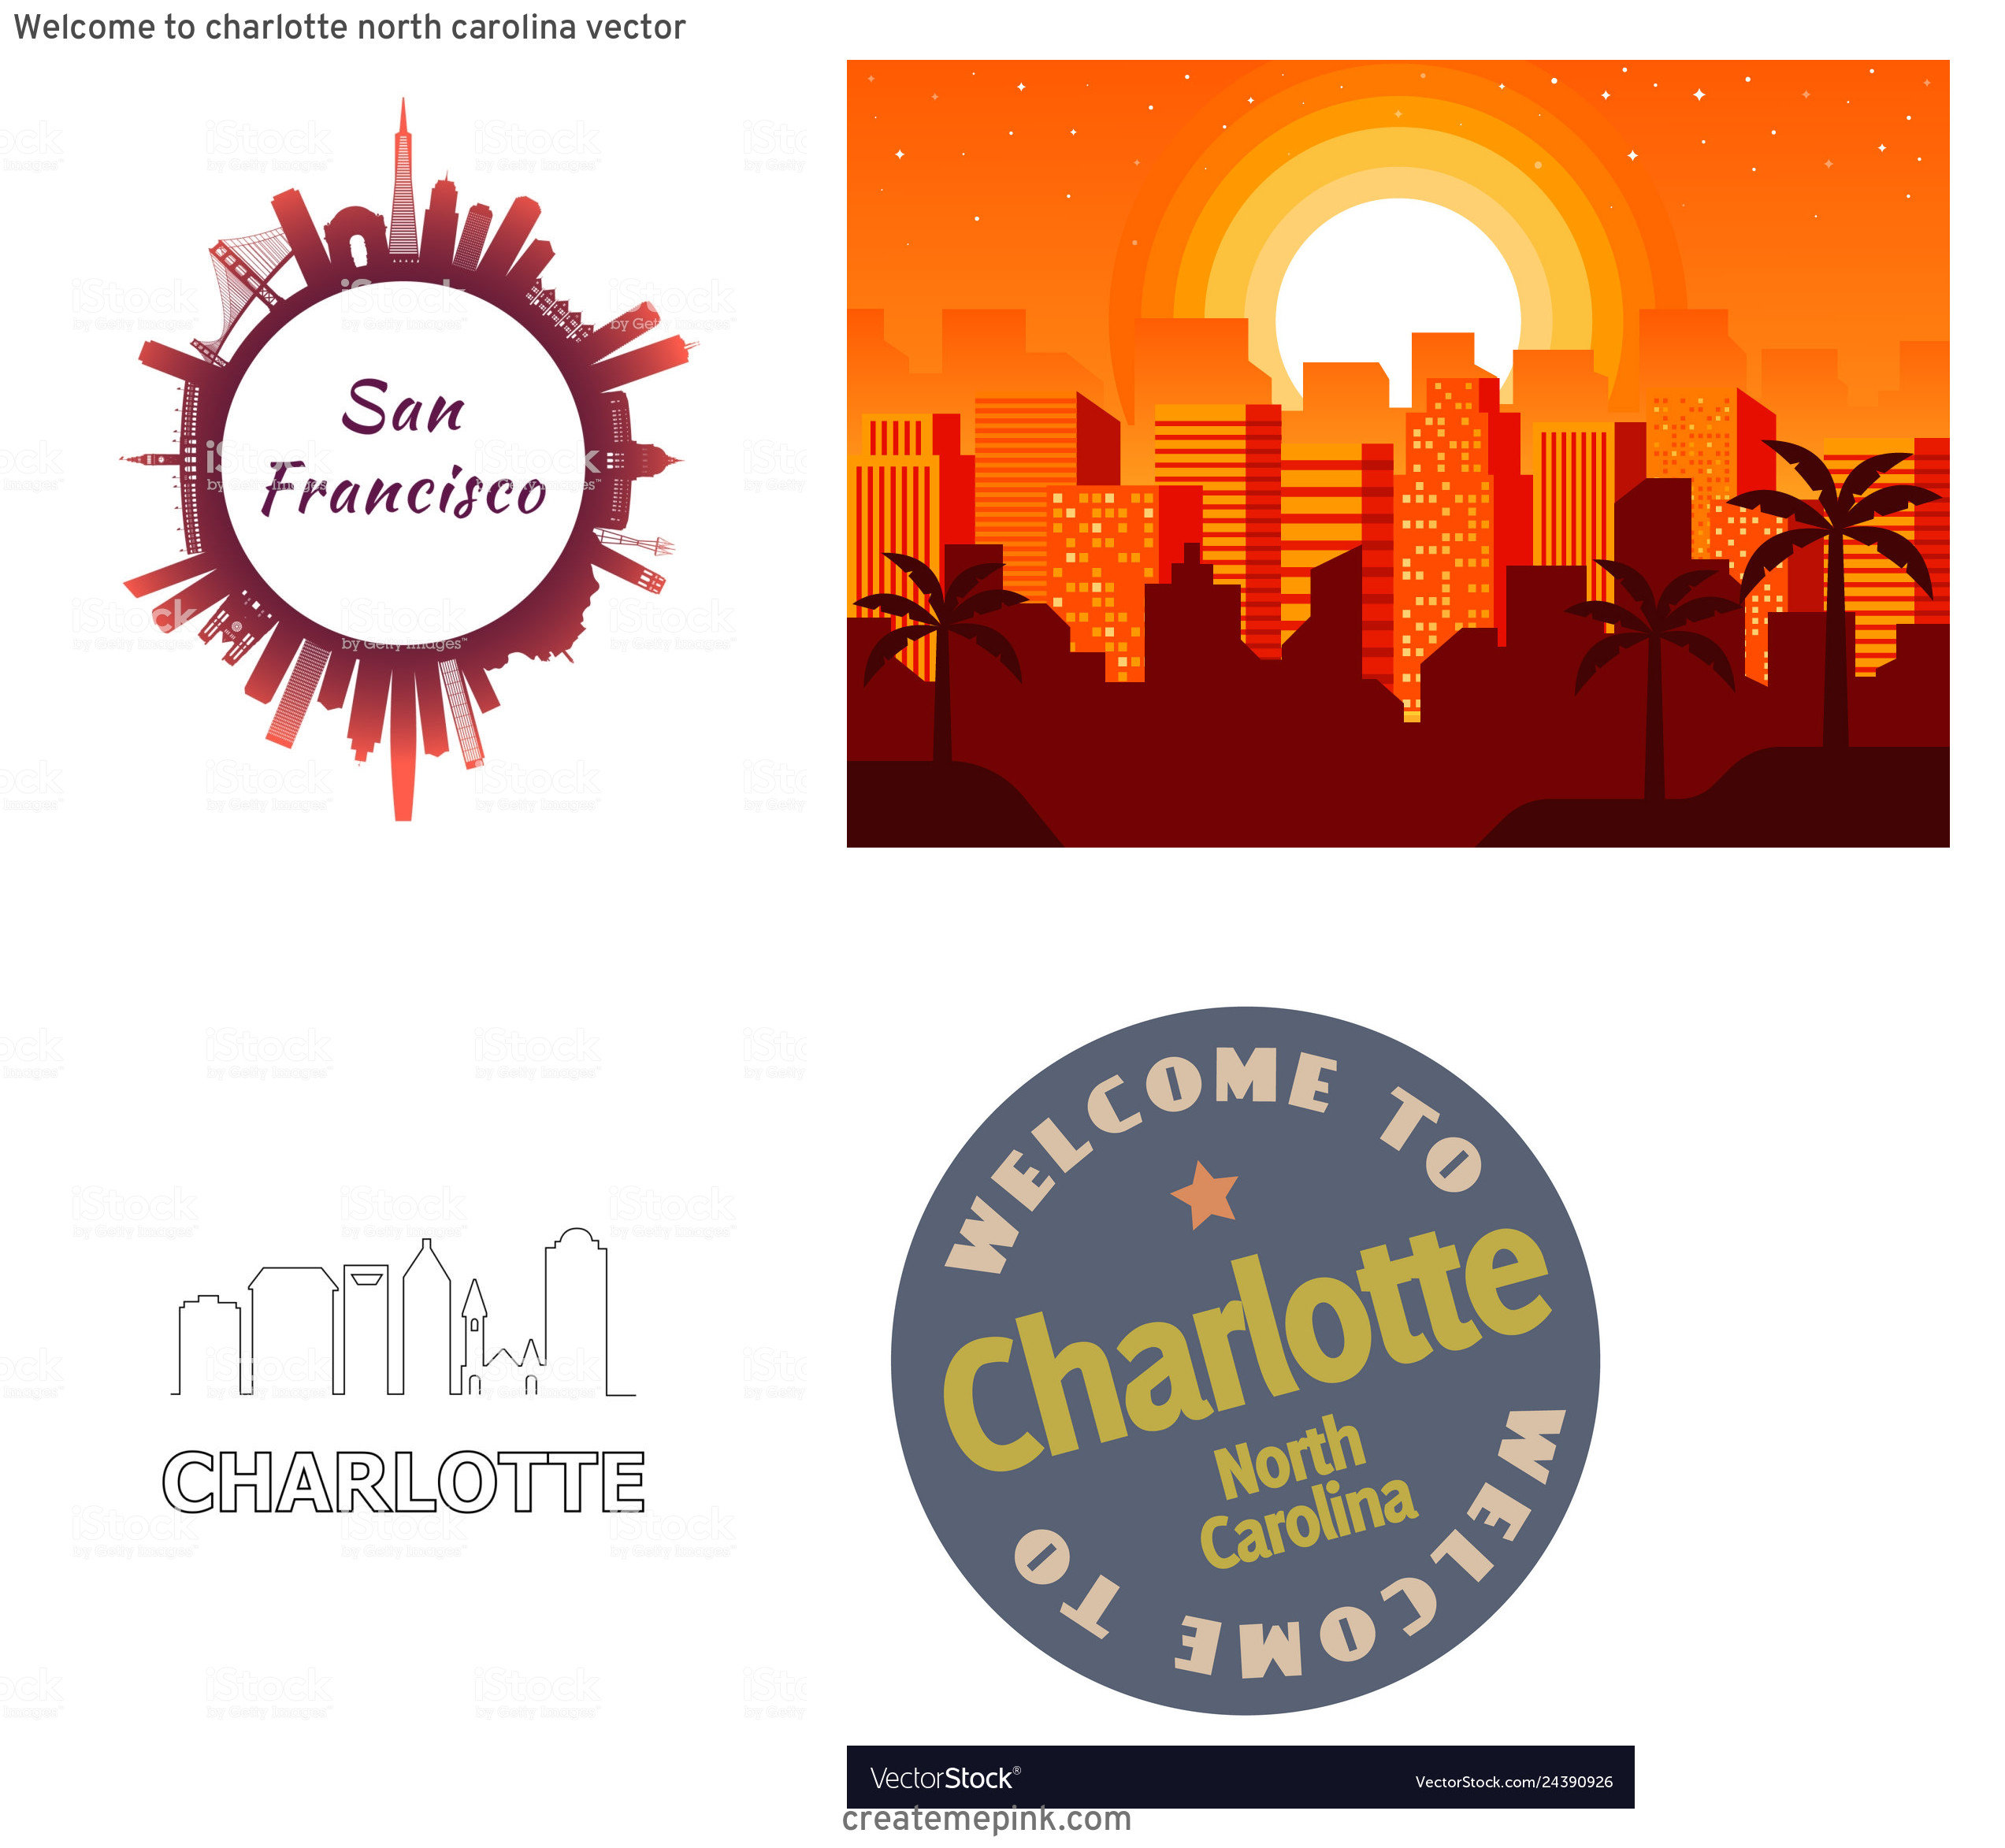 Charlotte Skyline Vector Circle: Welcome To Charlotte North Carolina Vector